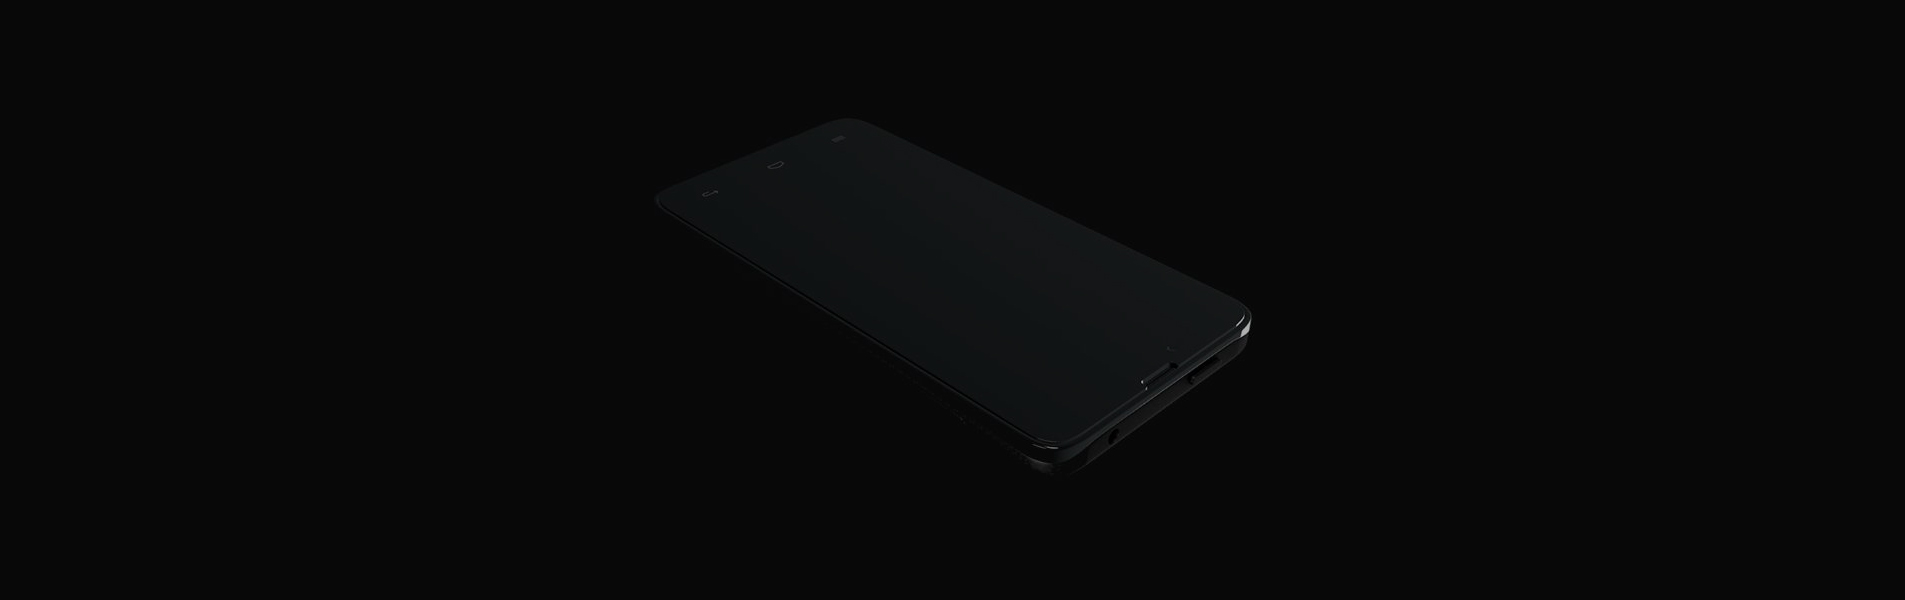 Blackphone -  The safest smartphone